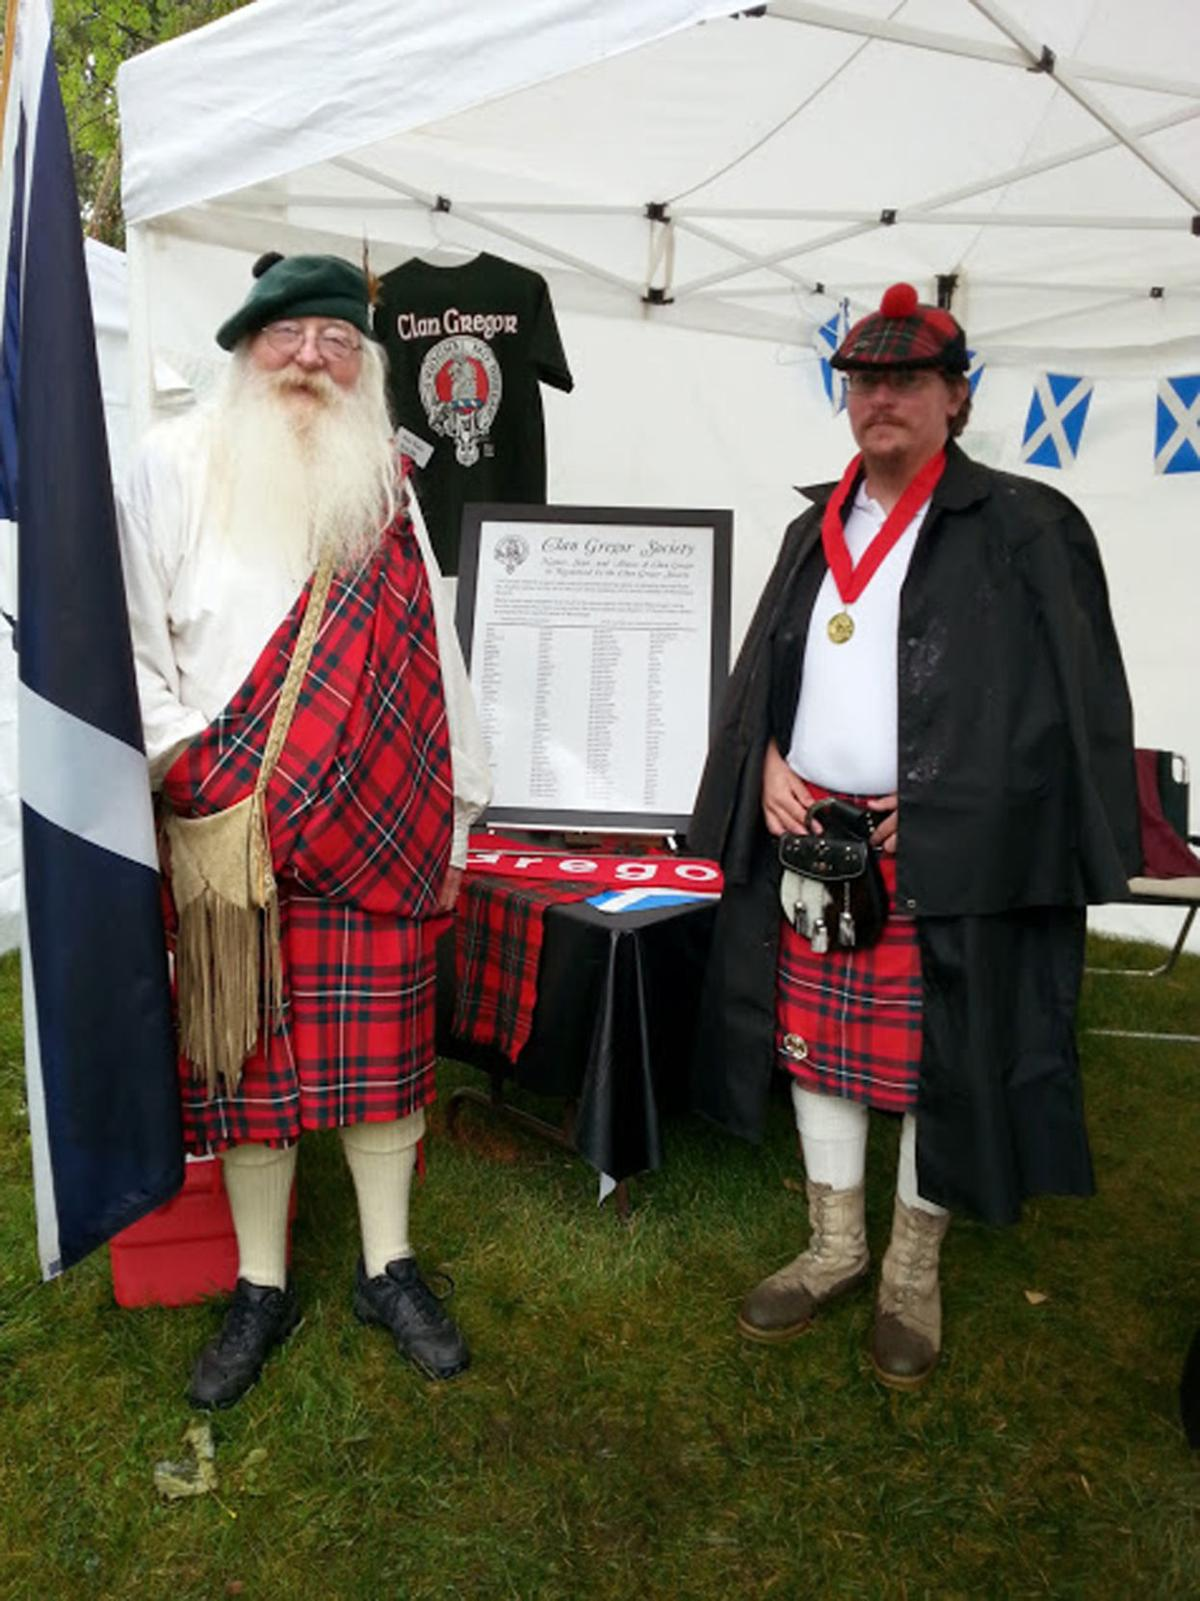 Clans assemble: Bitterroot Celtic Games and Gathering returns to Daly Mansion August 15-16